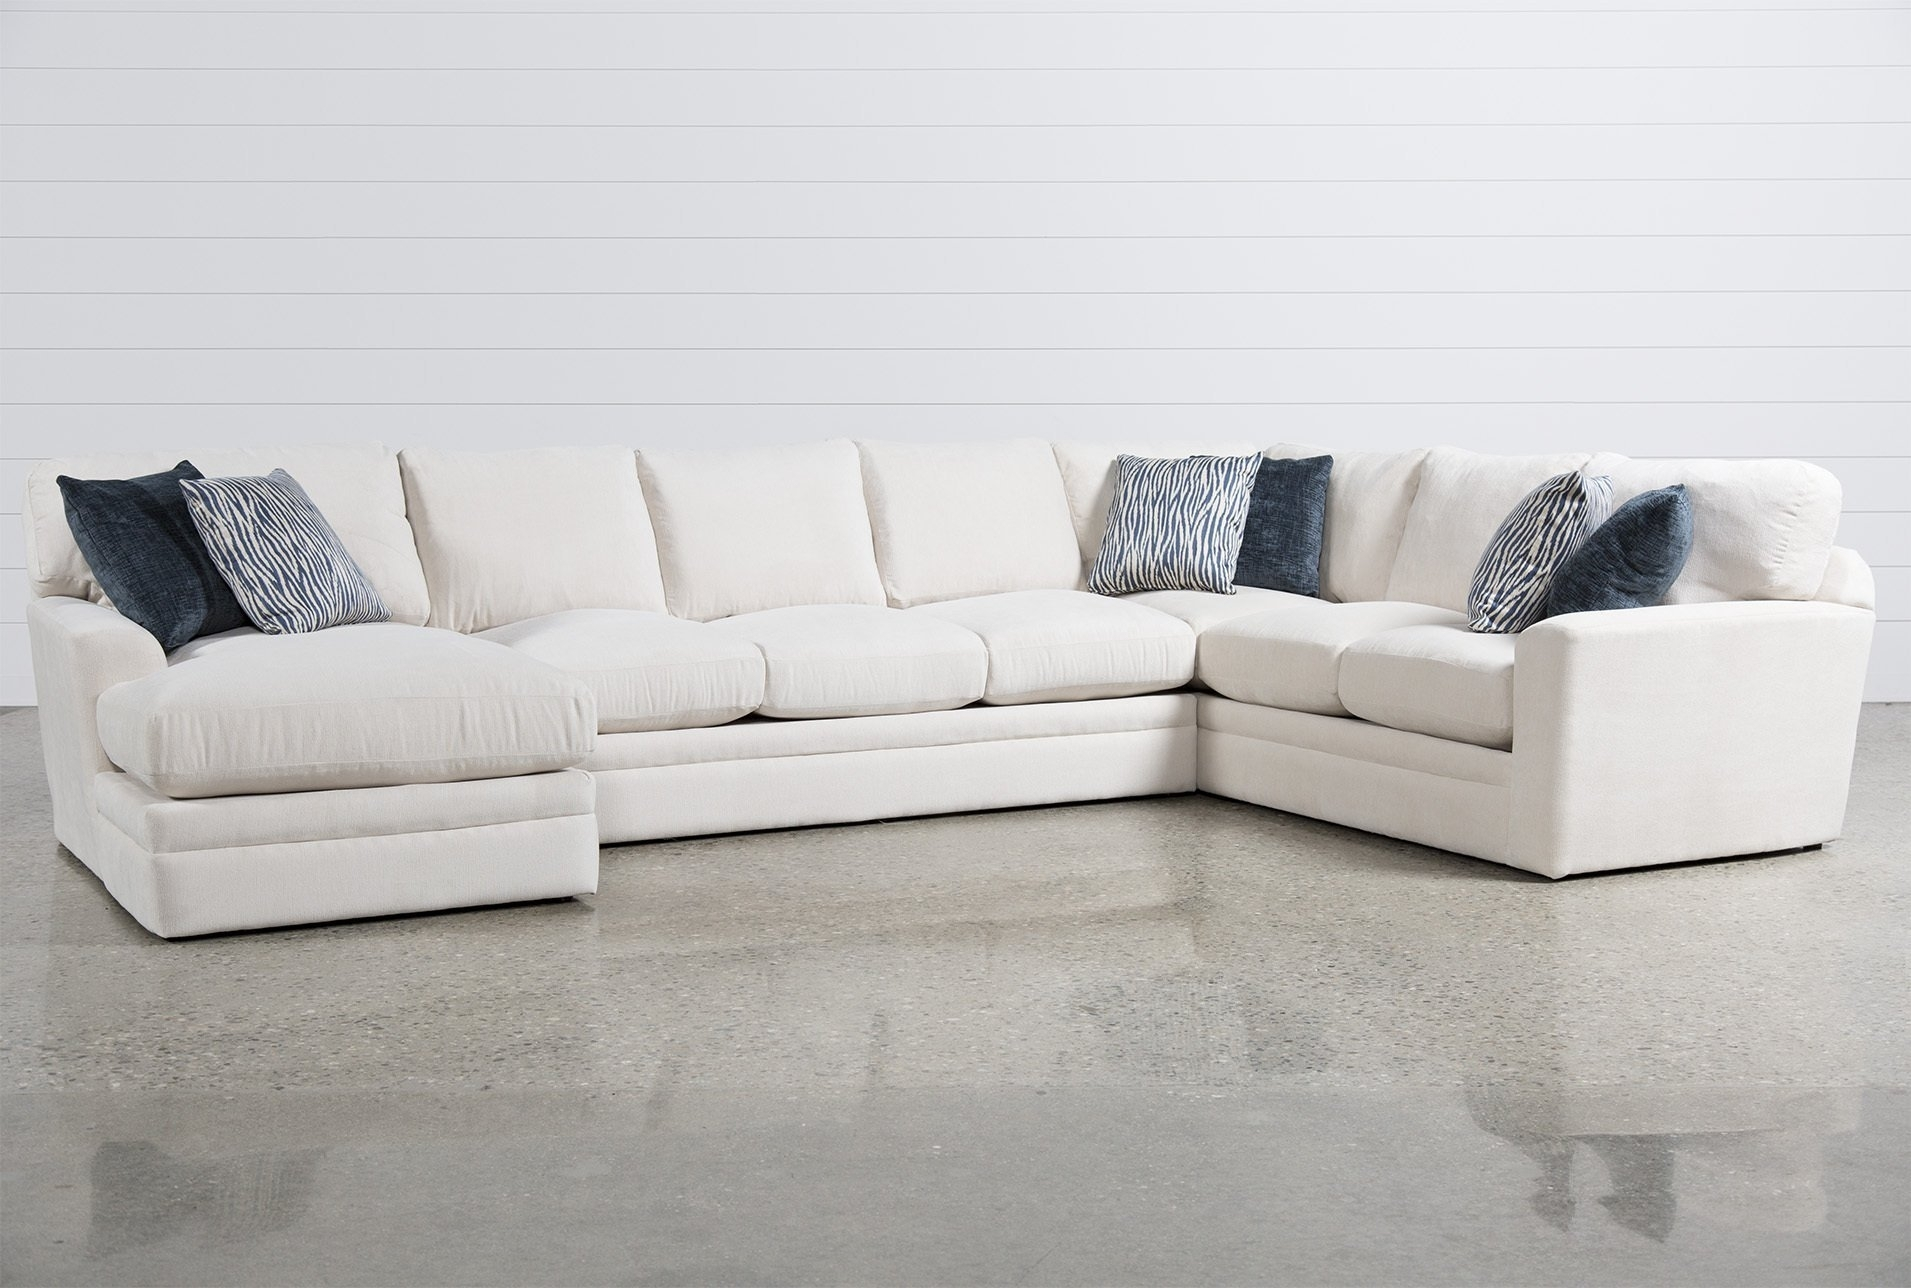 Remarkable Glamour Ii Piece Sectional Has Been Successfully Added To throughout Mesa Foam 2 Piece Sectionals (Image 23 of 30)